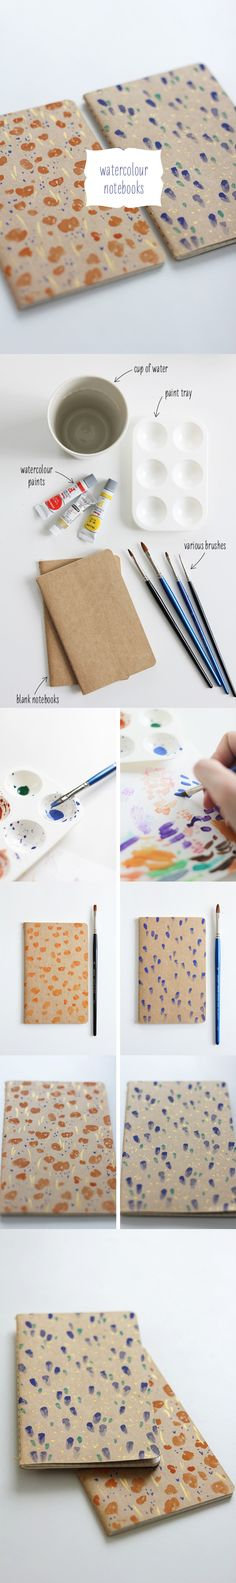 DIY watercolor decorated notebooks